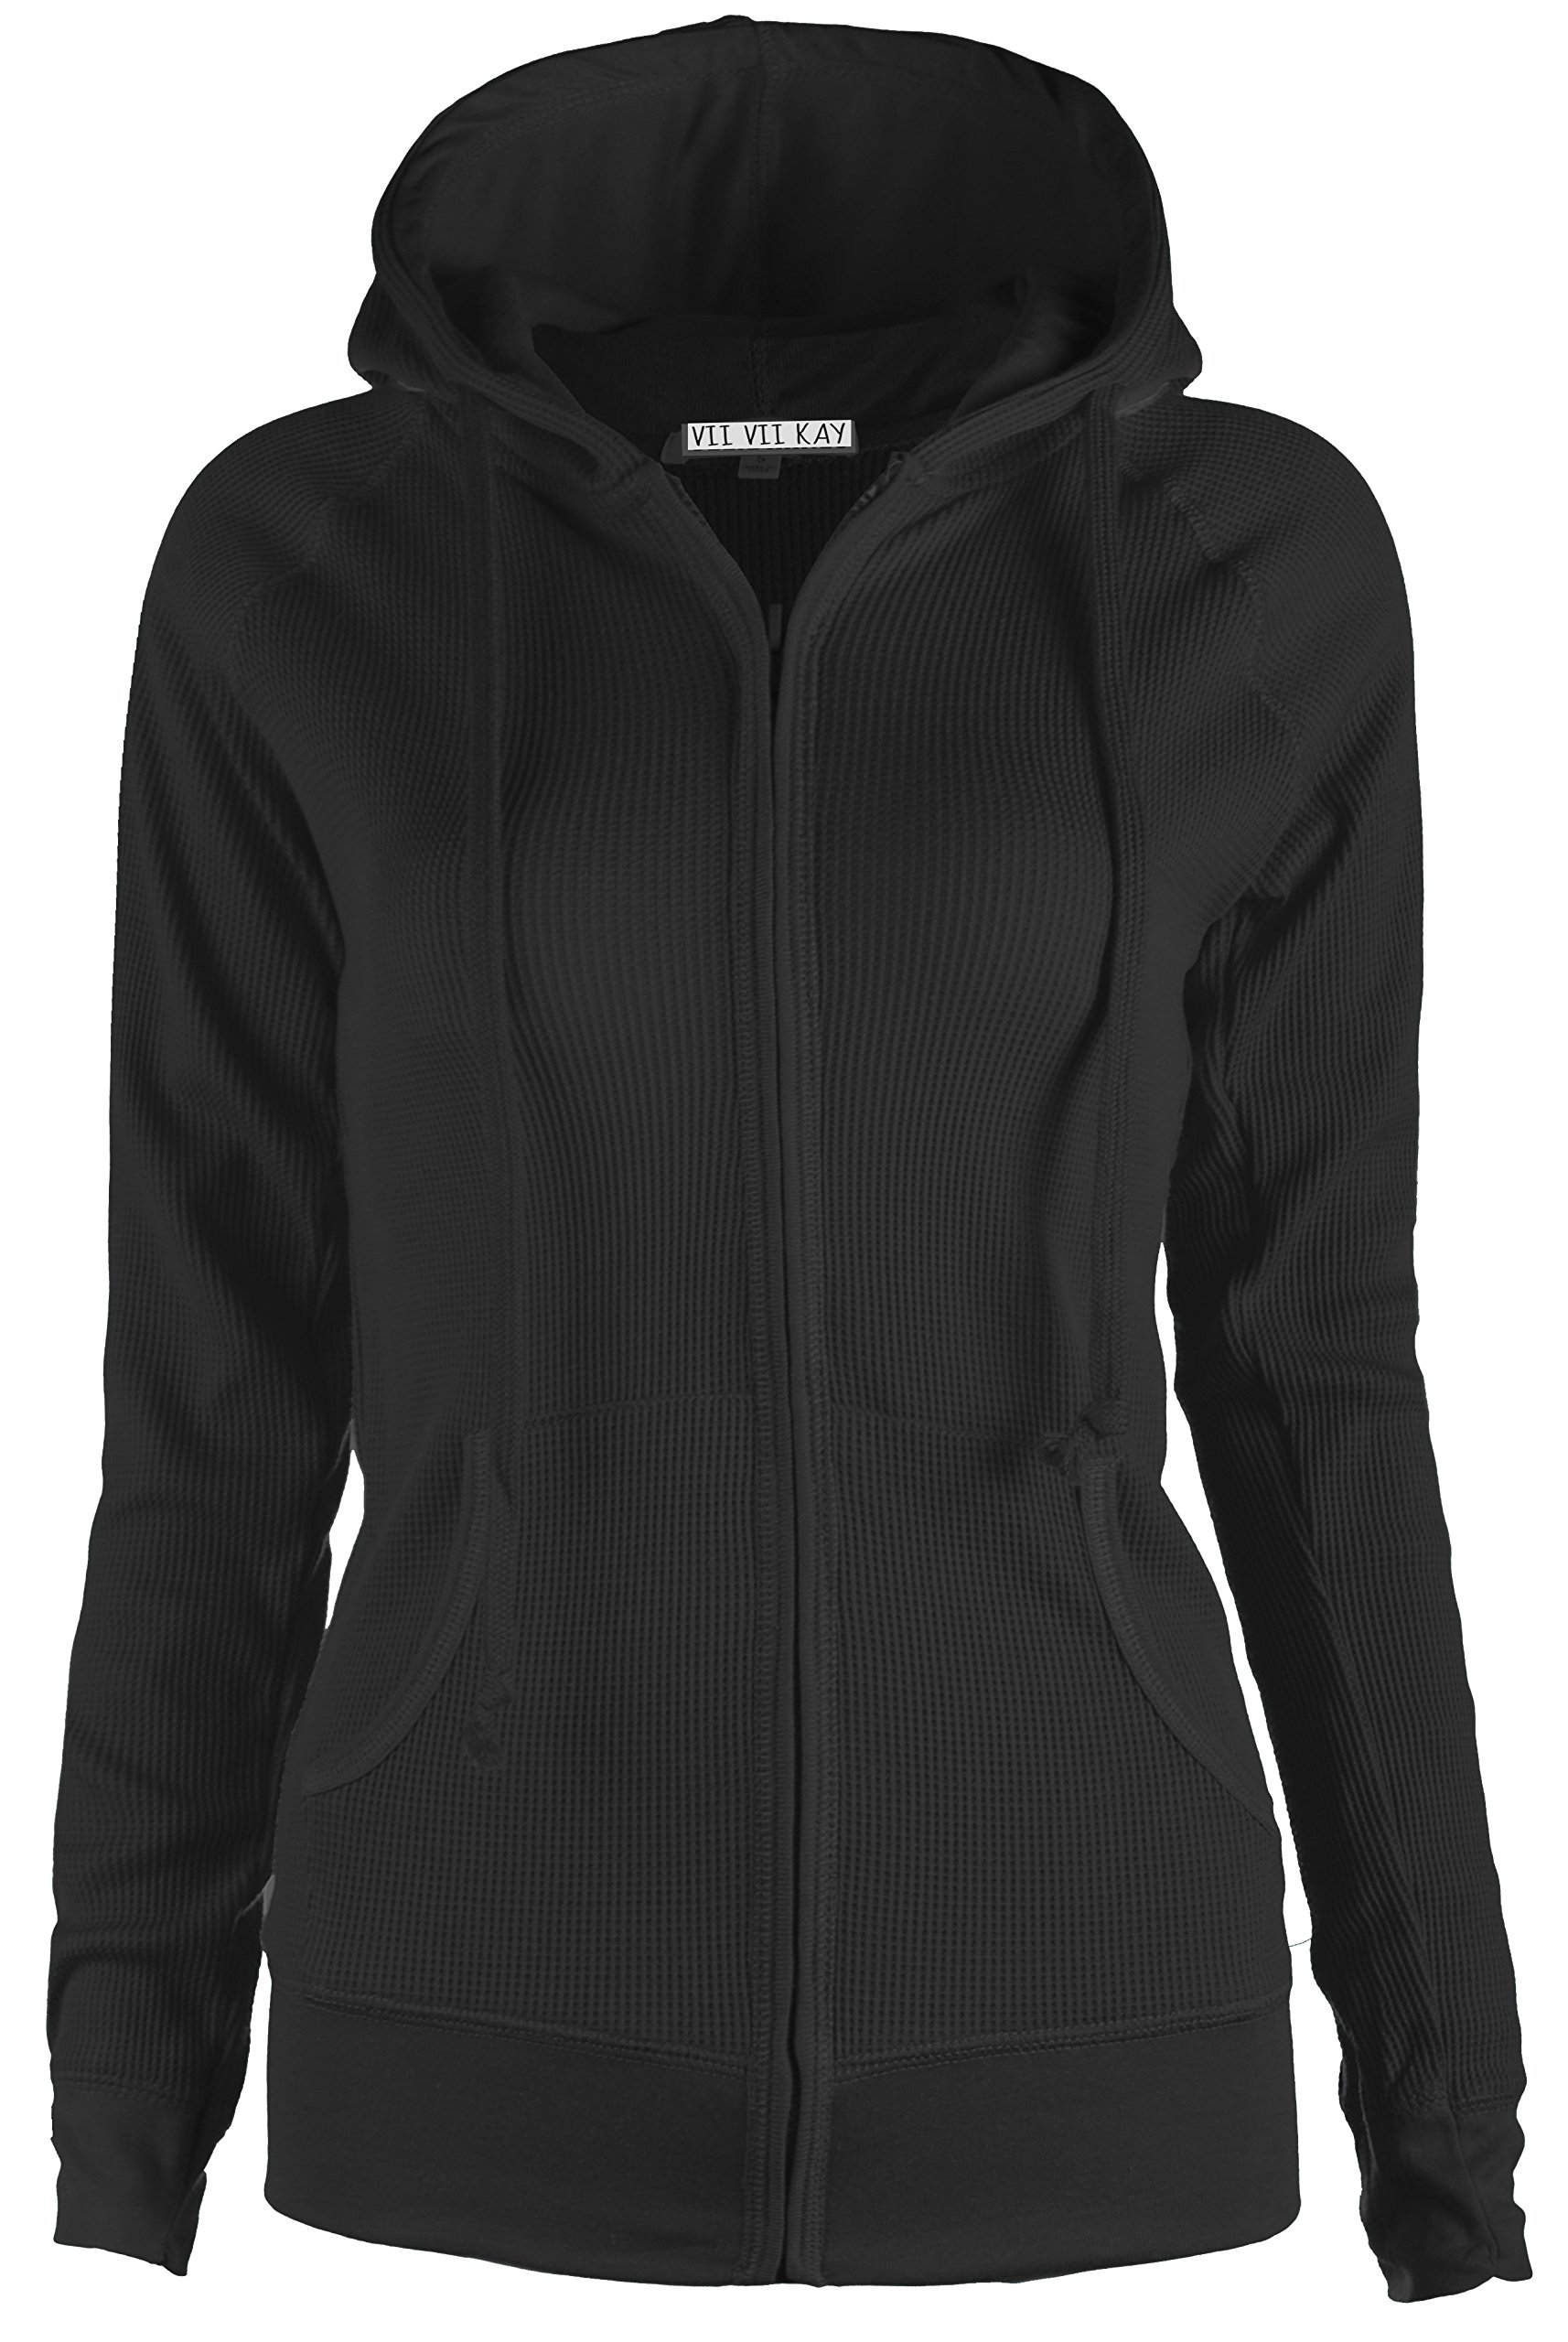 ViiViiKay Womens Casual Warm Thin Thermal Knitted Solid Zip-Up Hoodie Jacket BLACK,S